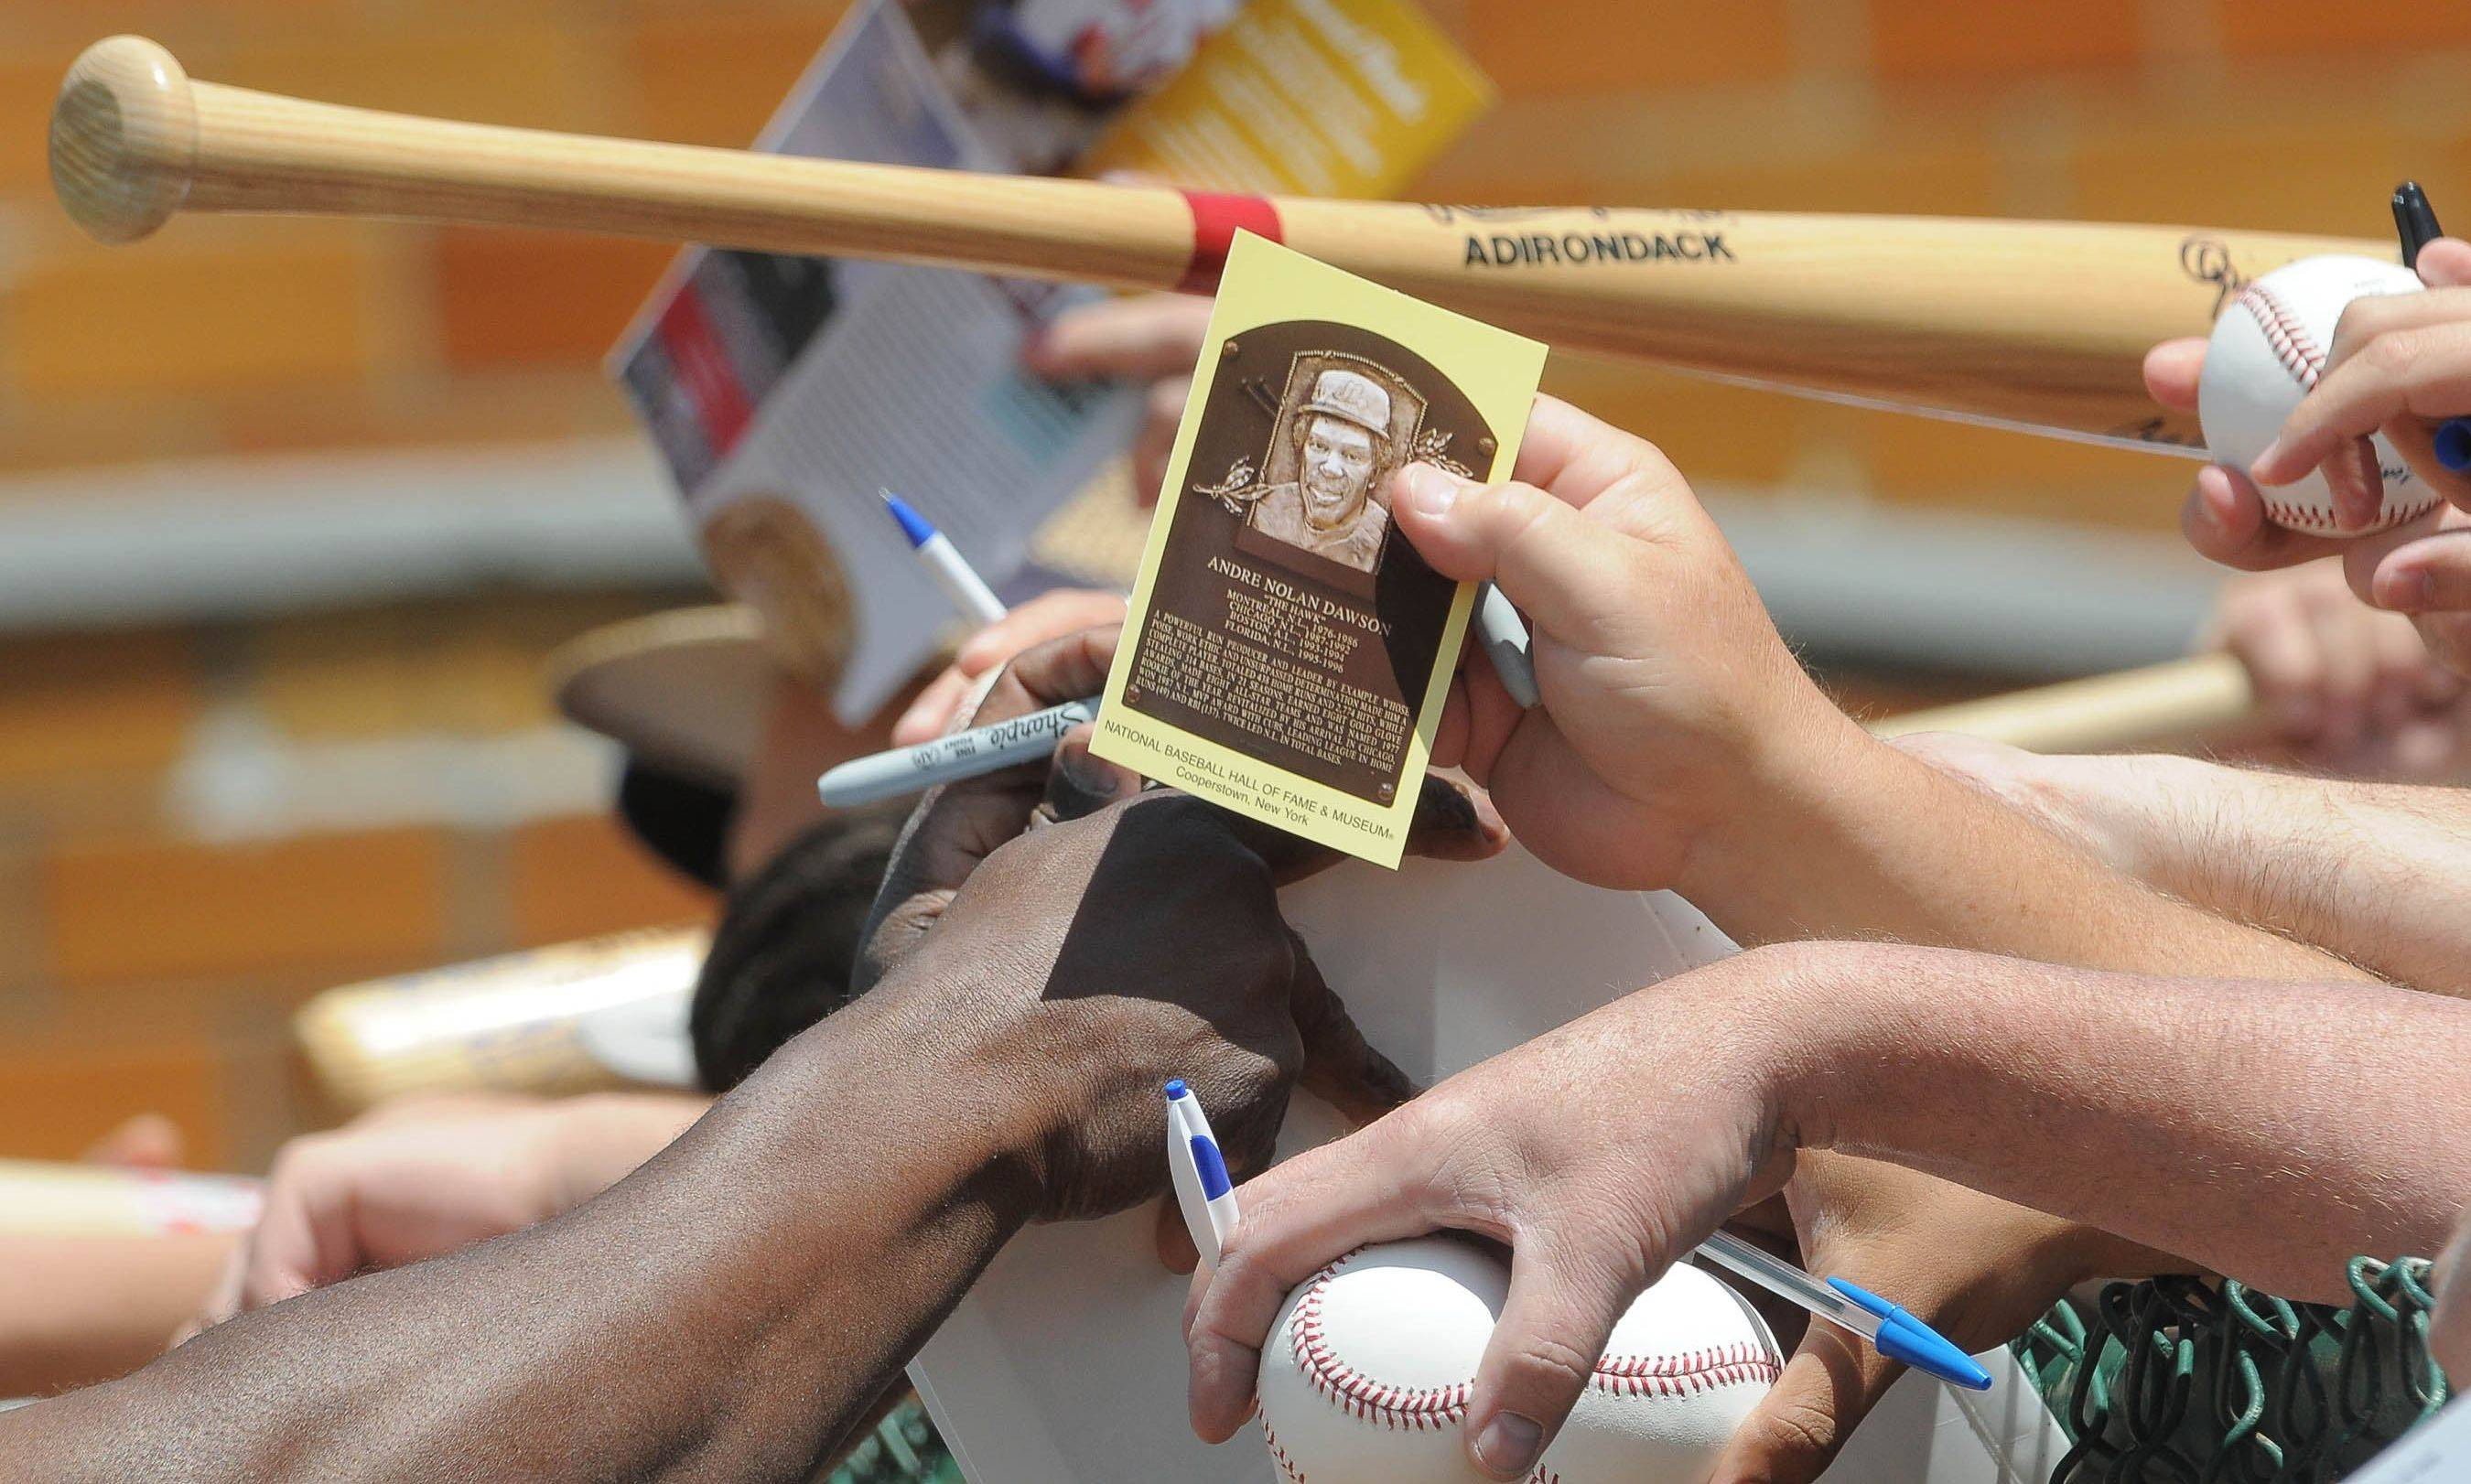 Fans reach to get Andre Dawson's autograph before the Hall of Fame Classic baseball game at Doubleday Field in Cooperstown, N.Y. last June.